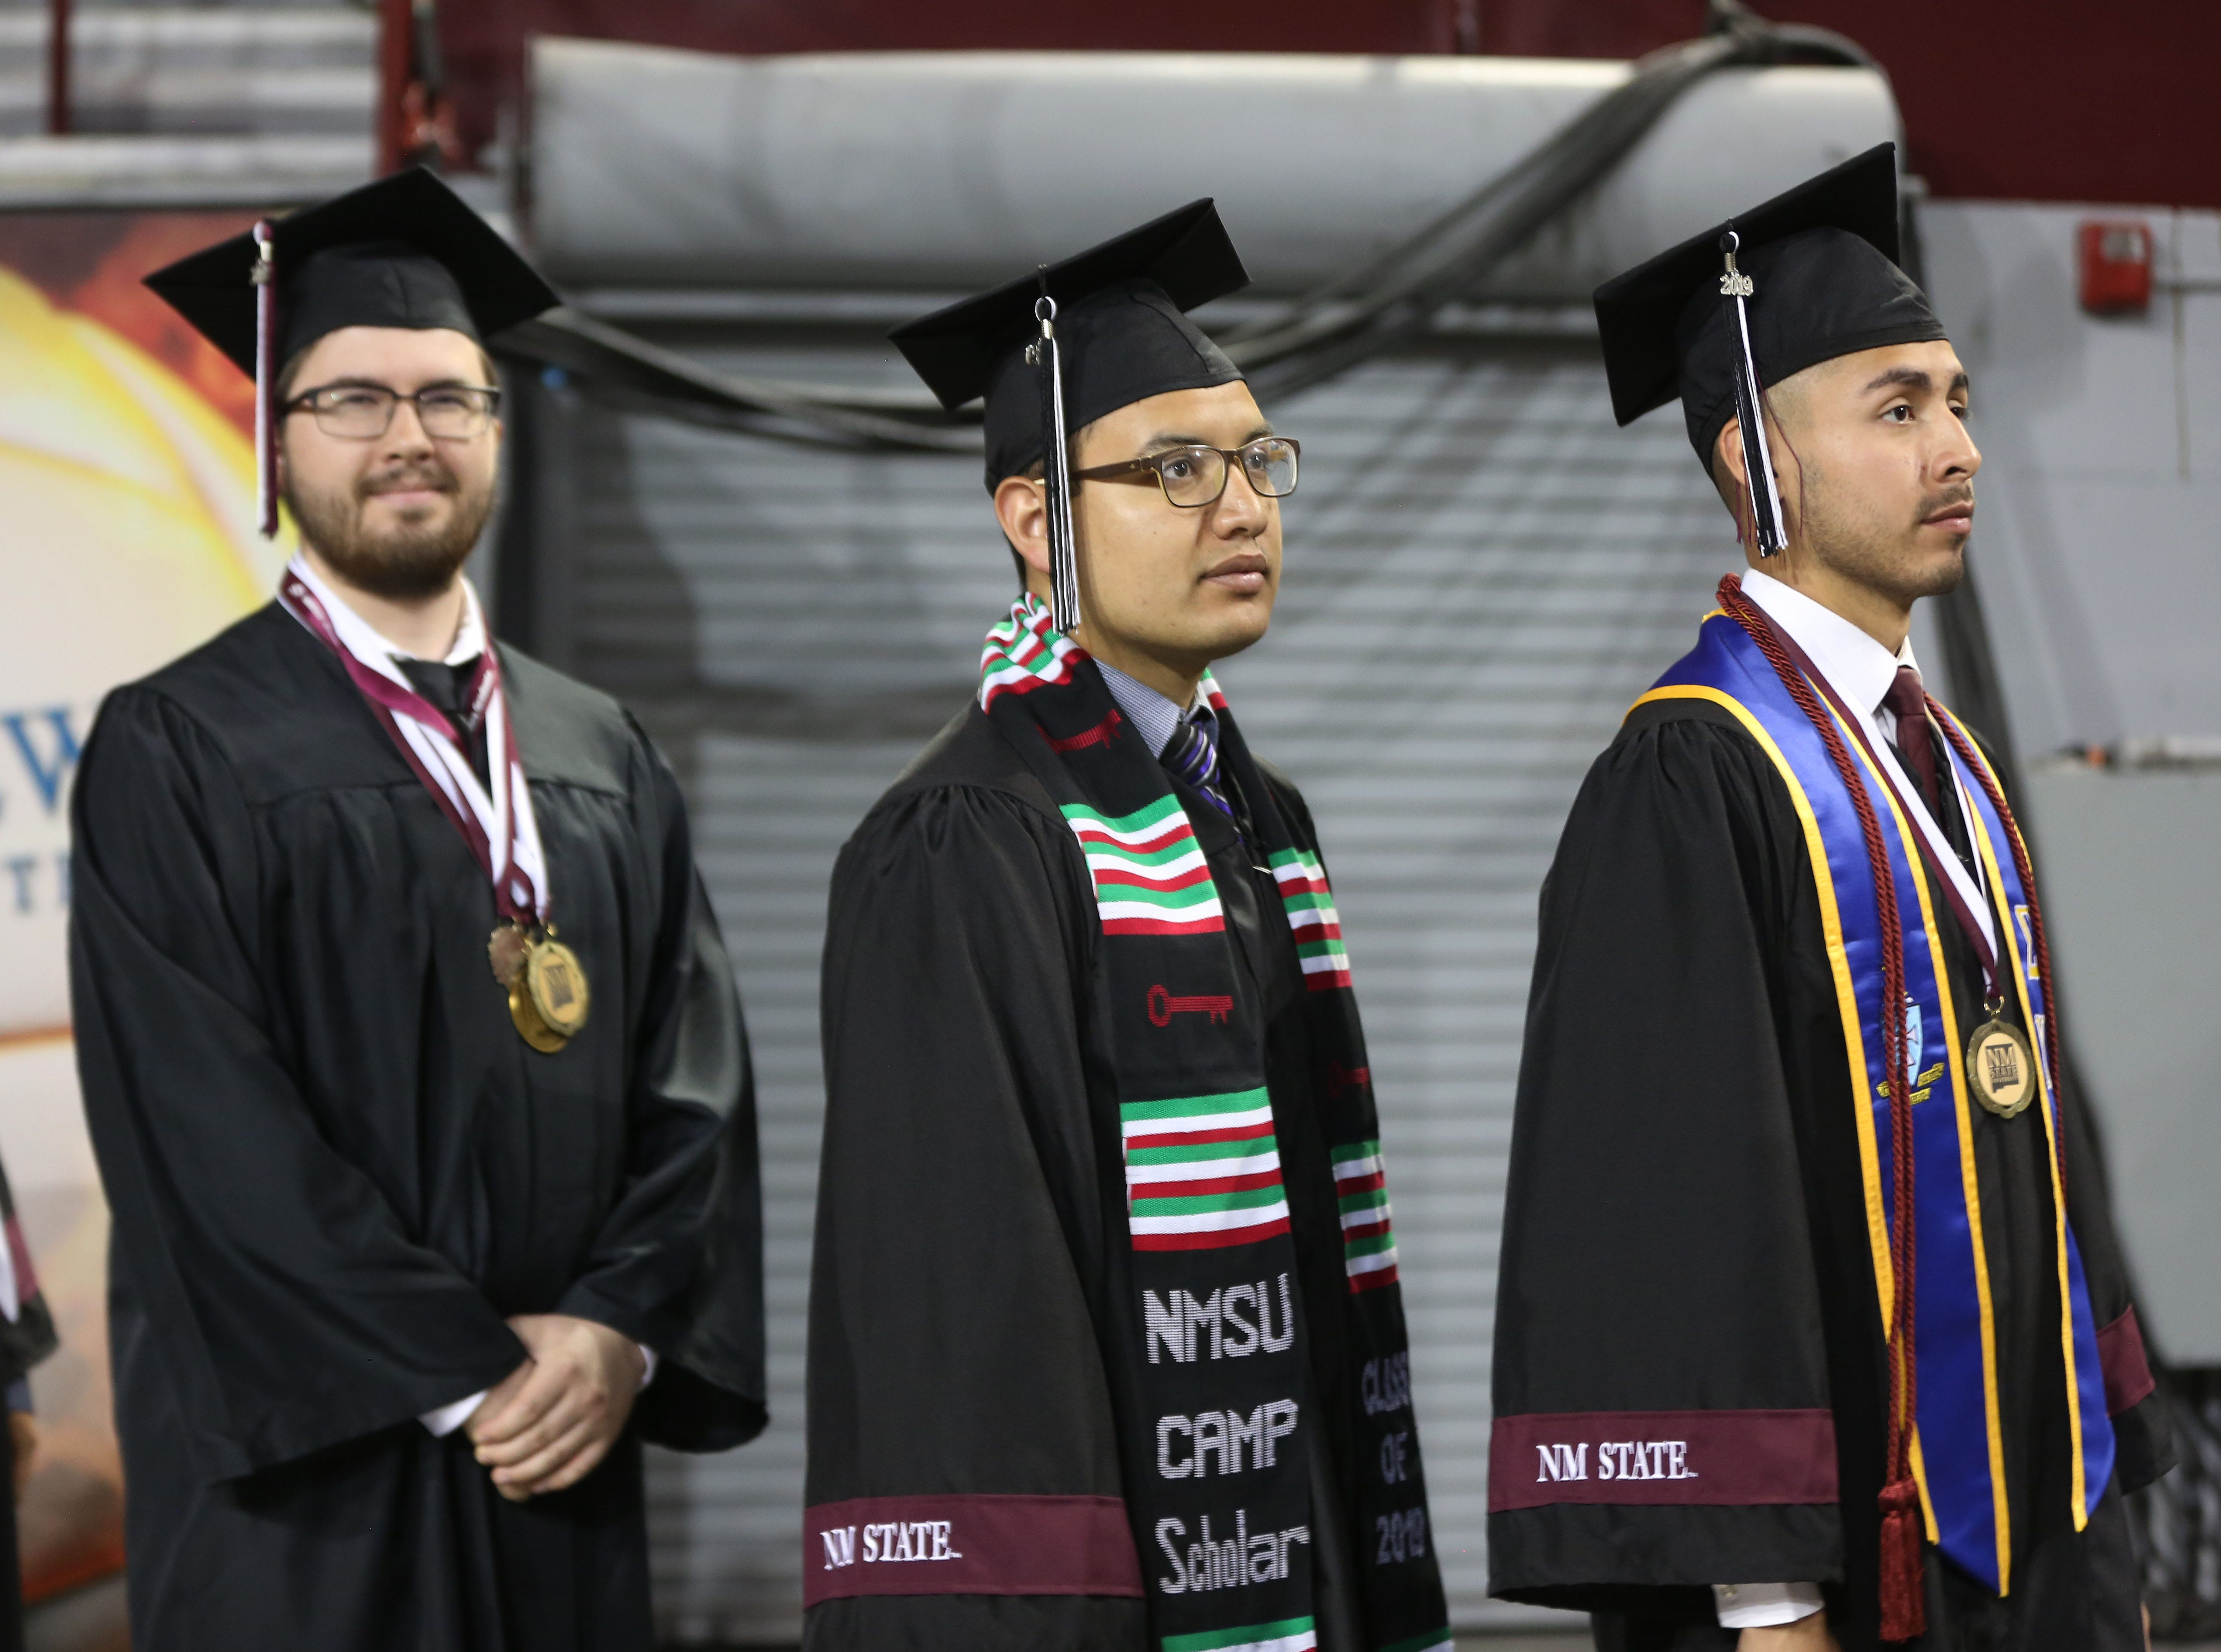 New Mexico State University students enter the stadium at the Pan American building in Las Cruces, for commencement, Saturday May 11, 2019.